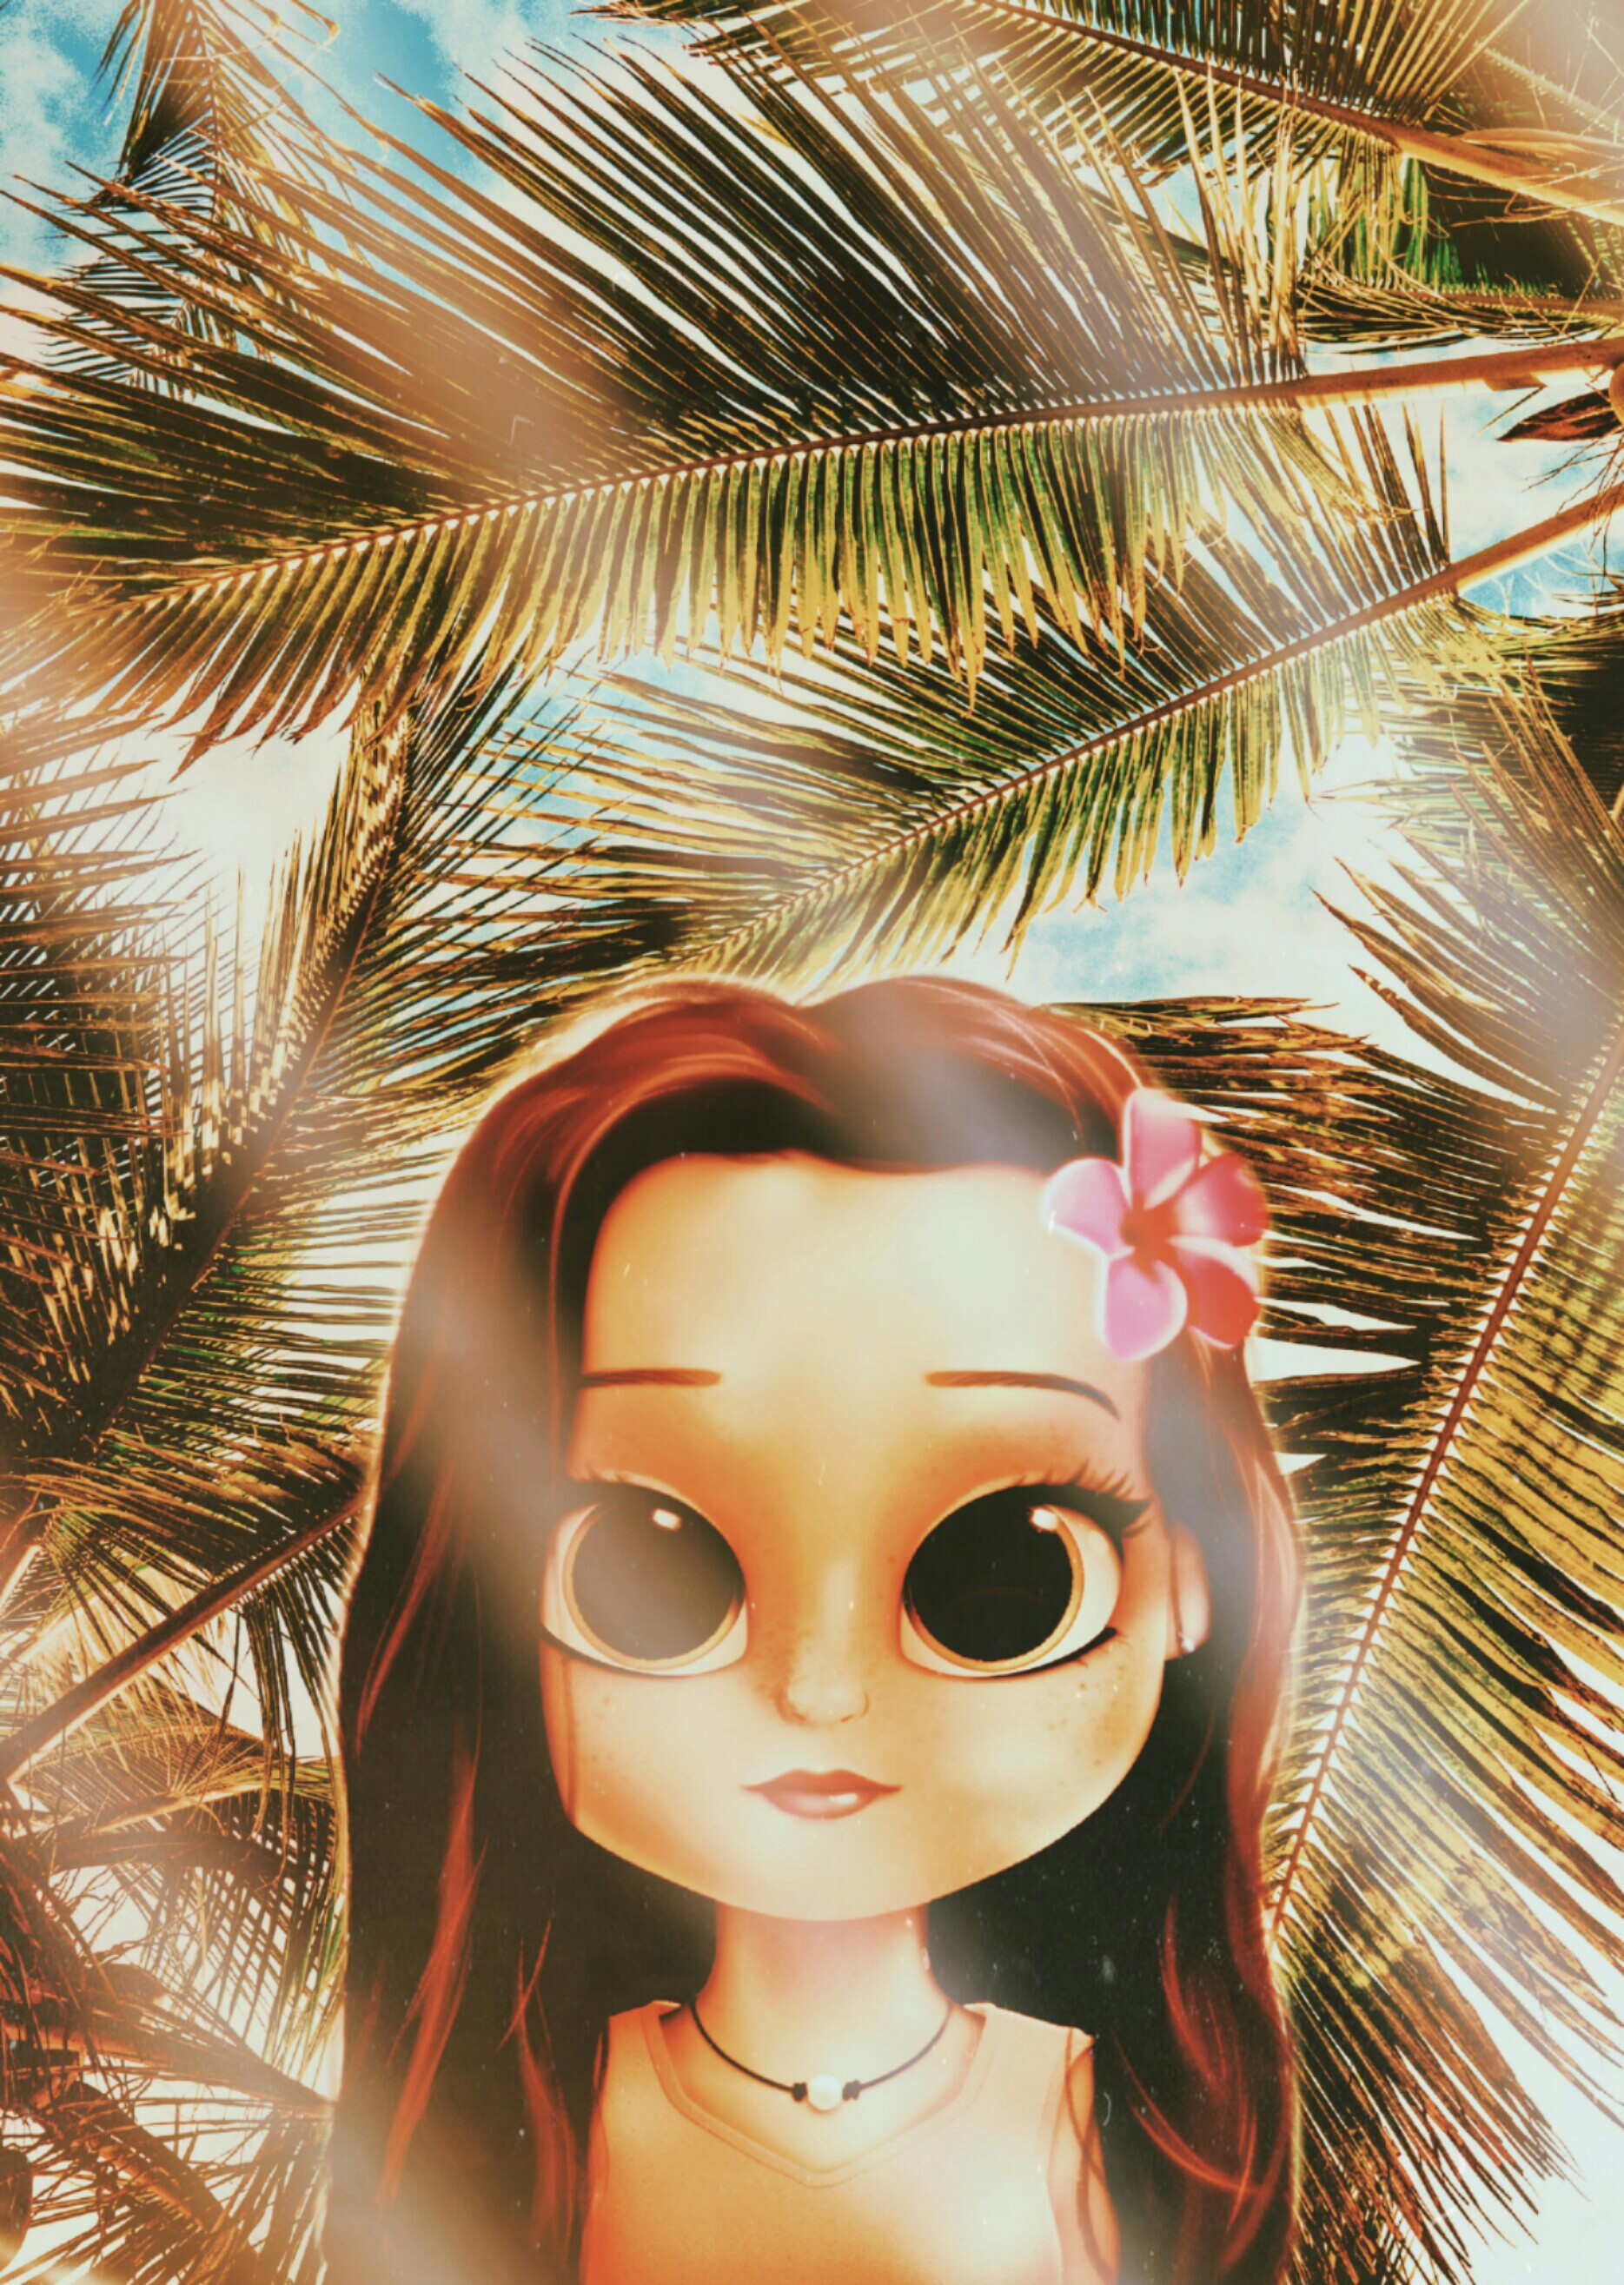 1000 Awesome dollify Images on PicsArt